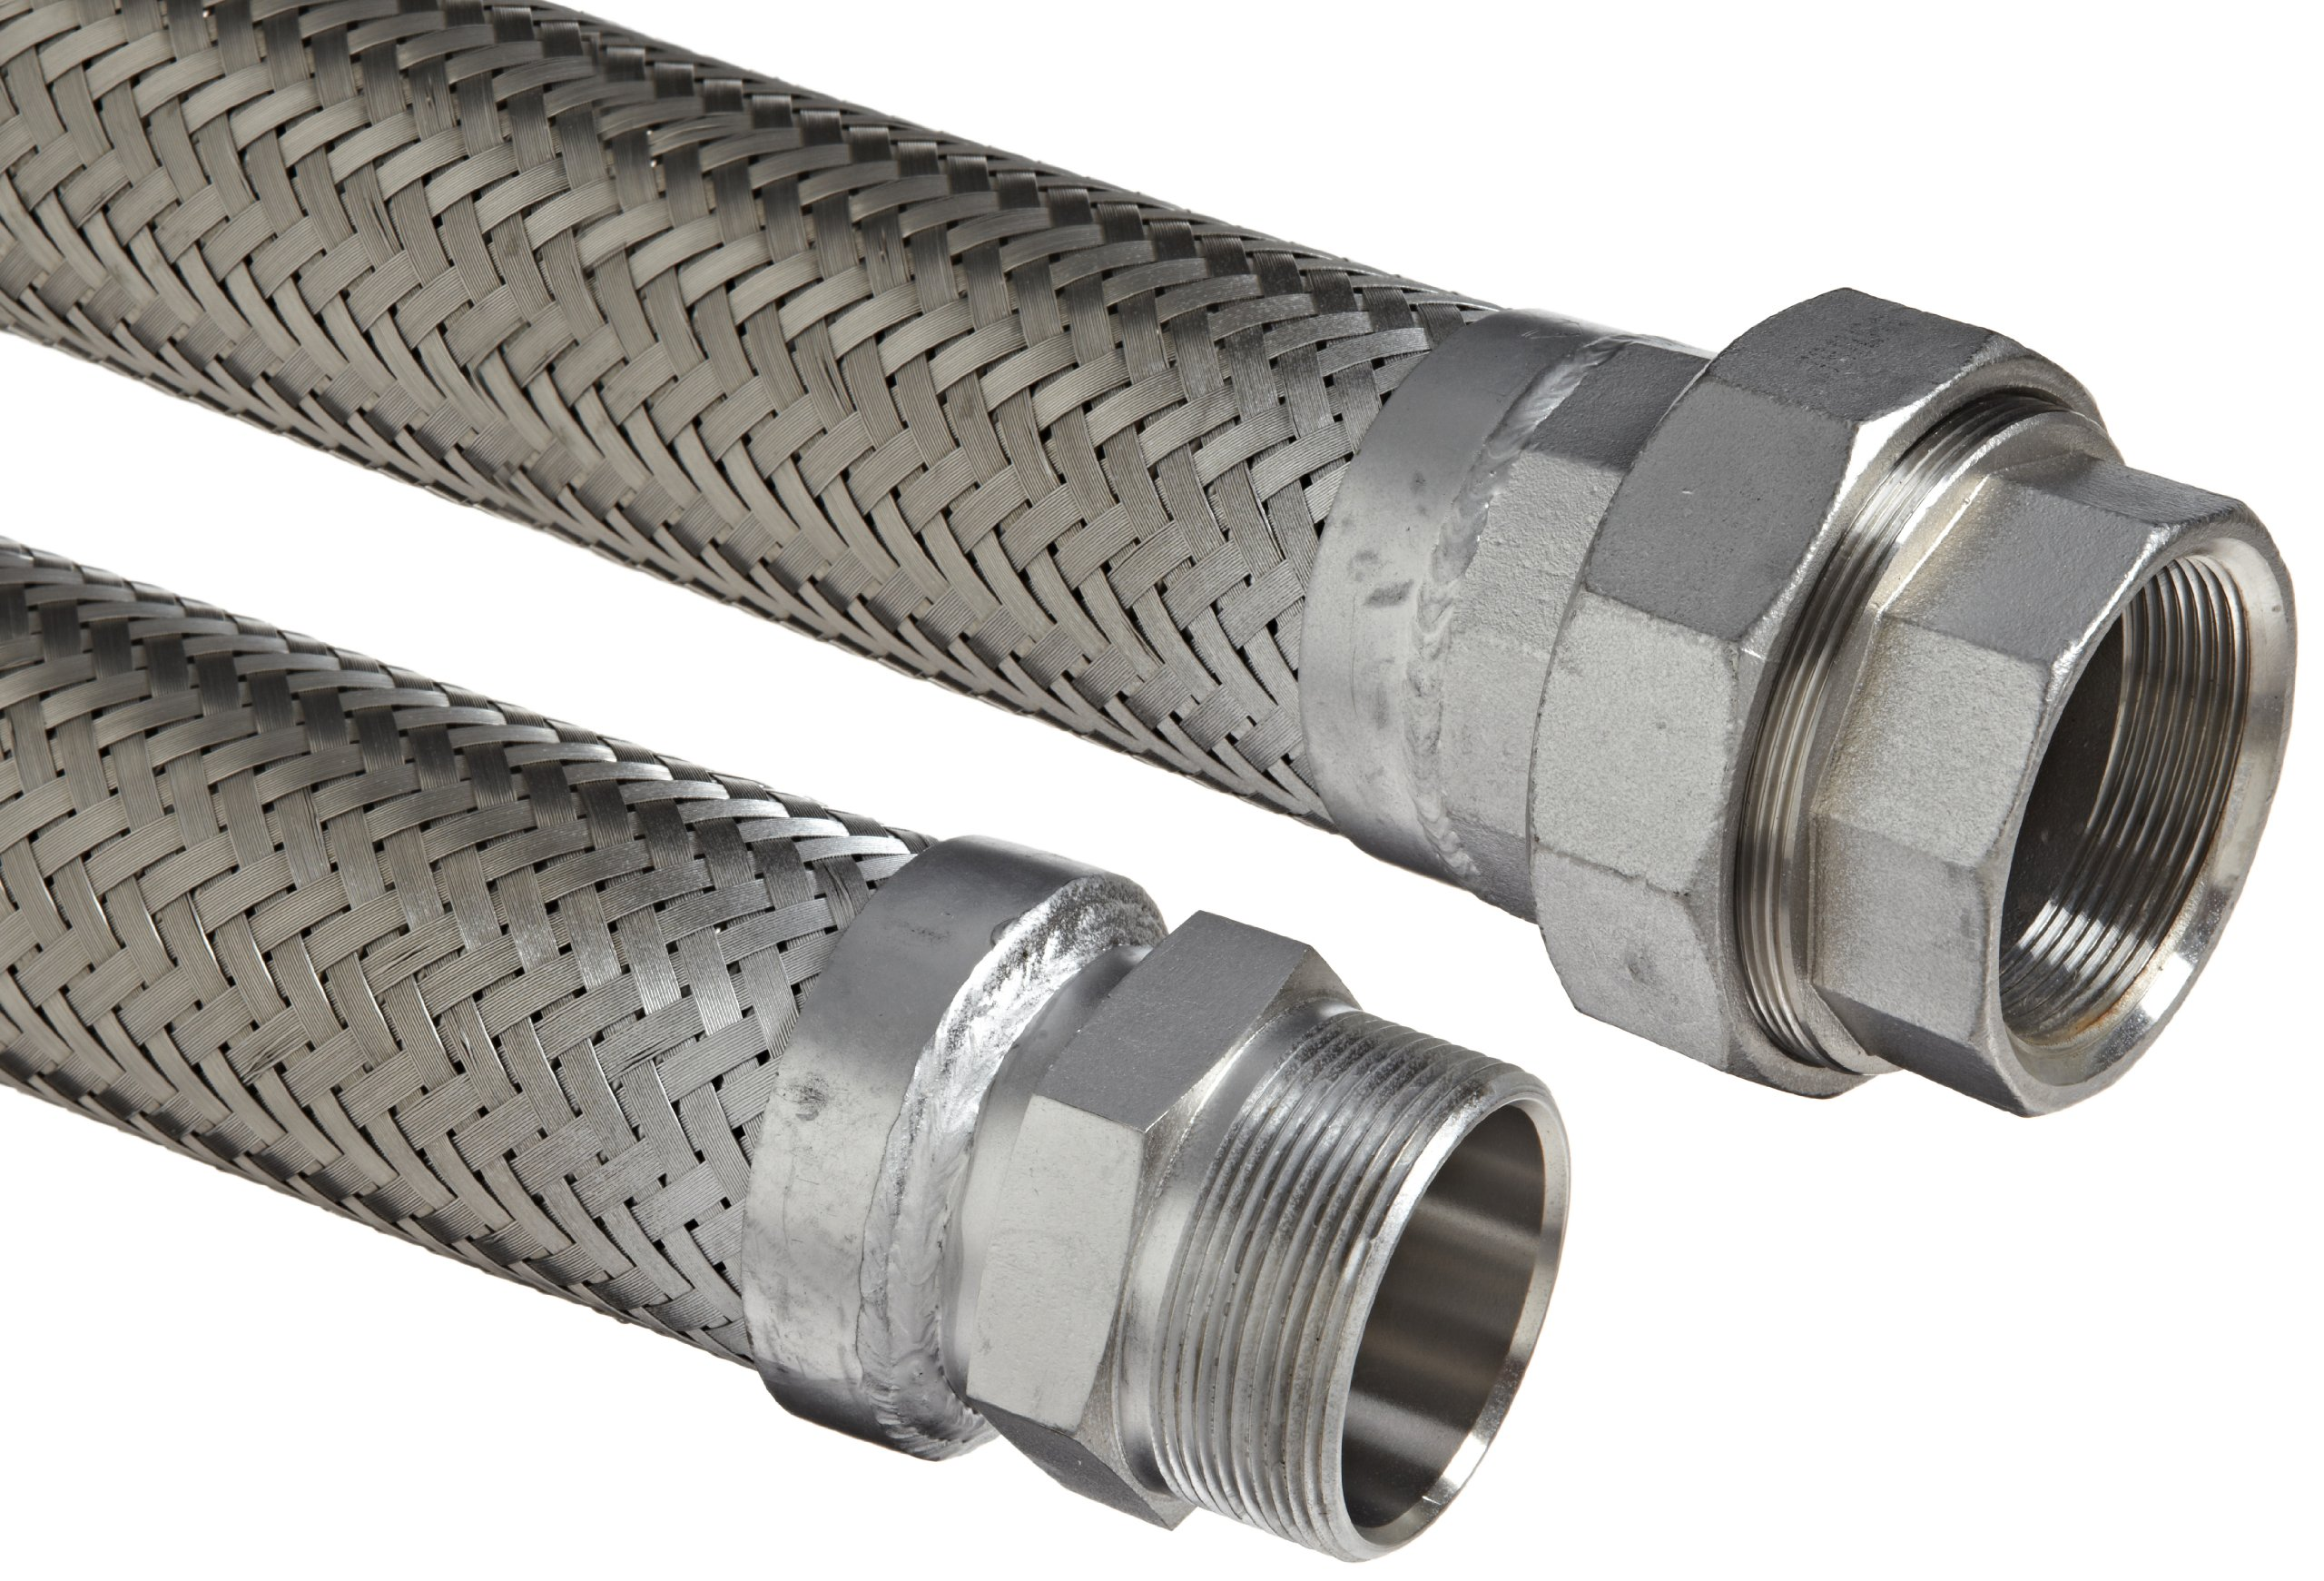 Hose Master Masterflex Stainless Steel 321 Flexible Hose Assembly, 1/2'' Stainless Steel 304 Hex NPT Male x 150 psi NPT Female Union Connection, 300 PSI Maximum Pressure, 36'' Length, 1/2'' ID